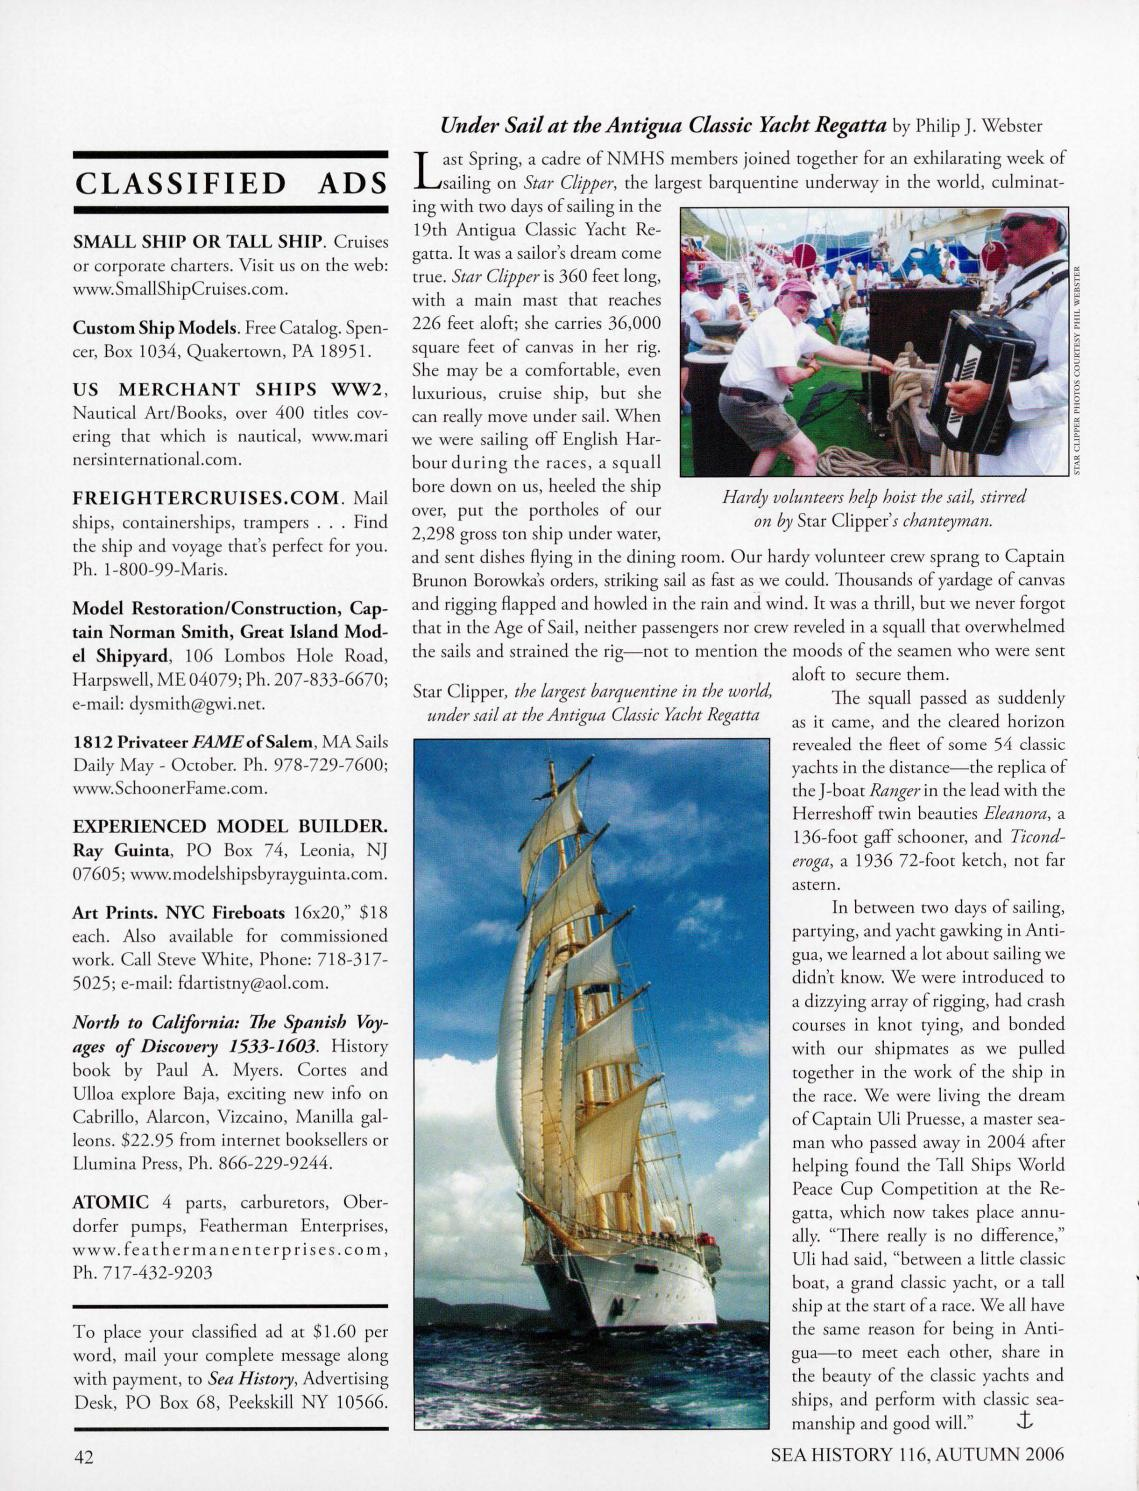 Sea History 116 - Autumn 2006 by National Maritime Historical